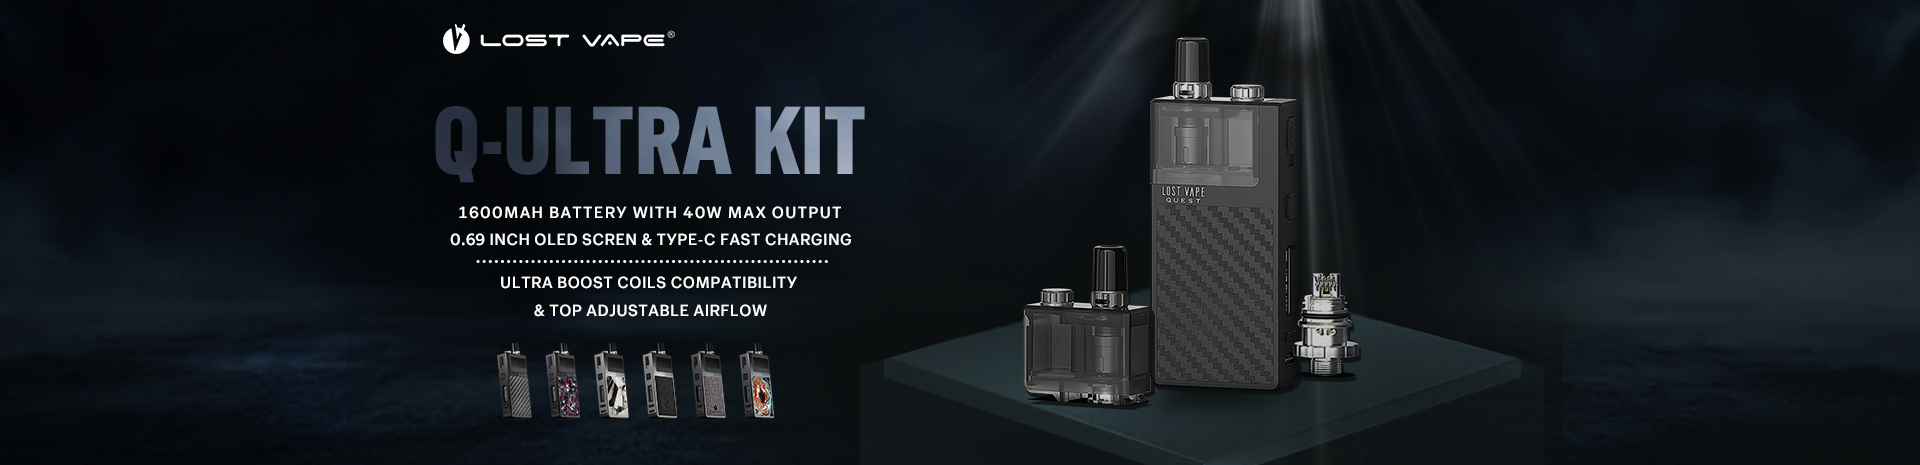 Lost Vape Q Ultra Kit Banner